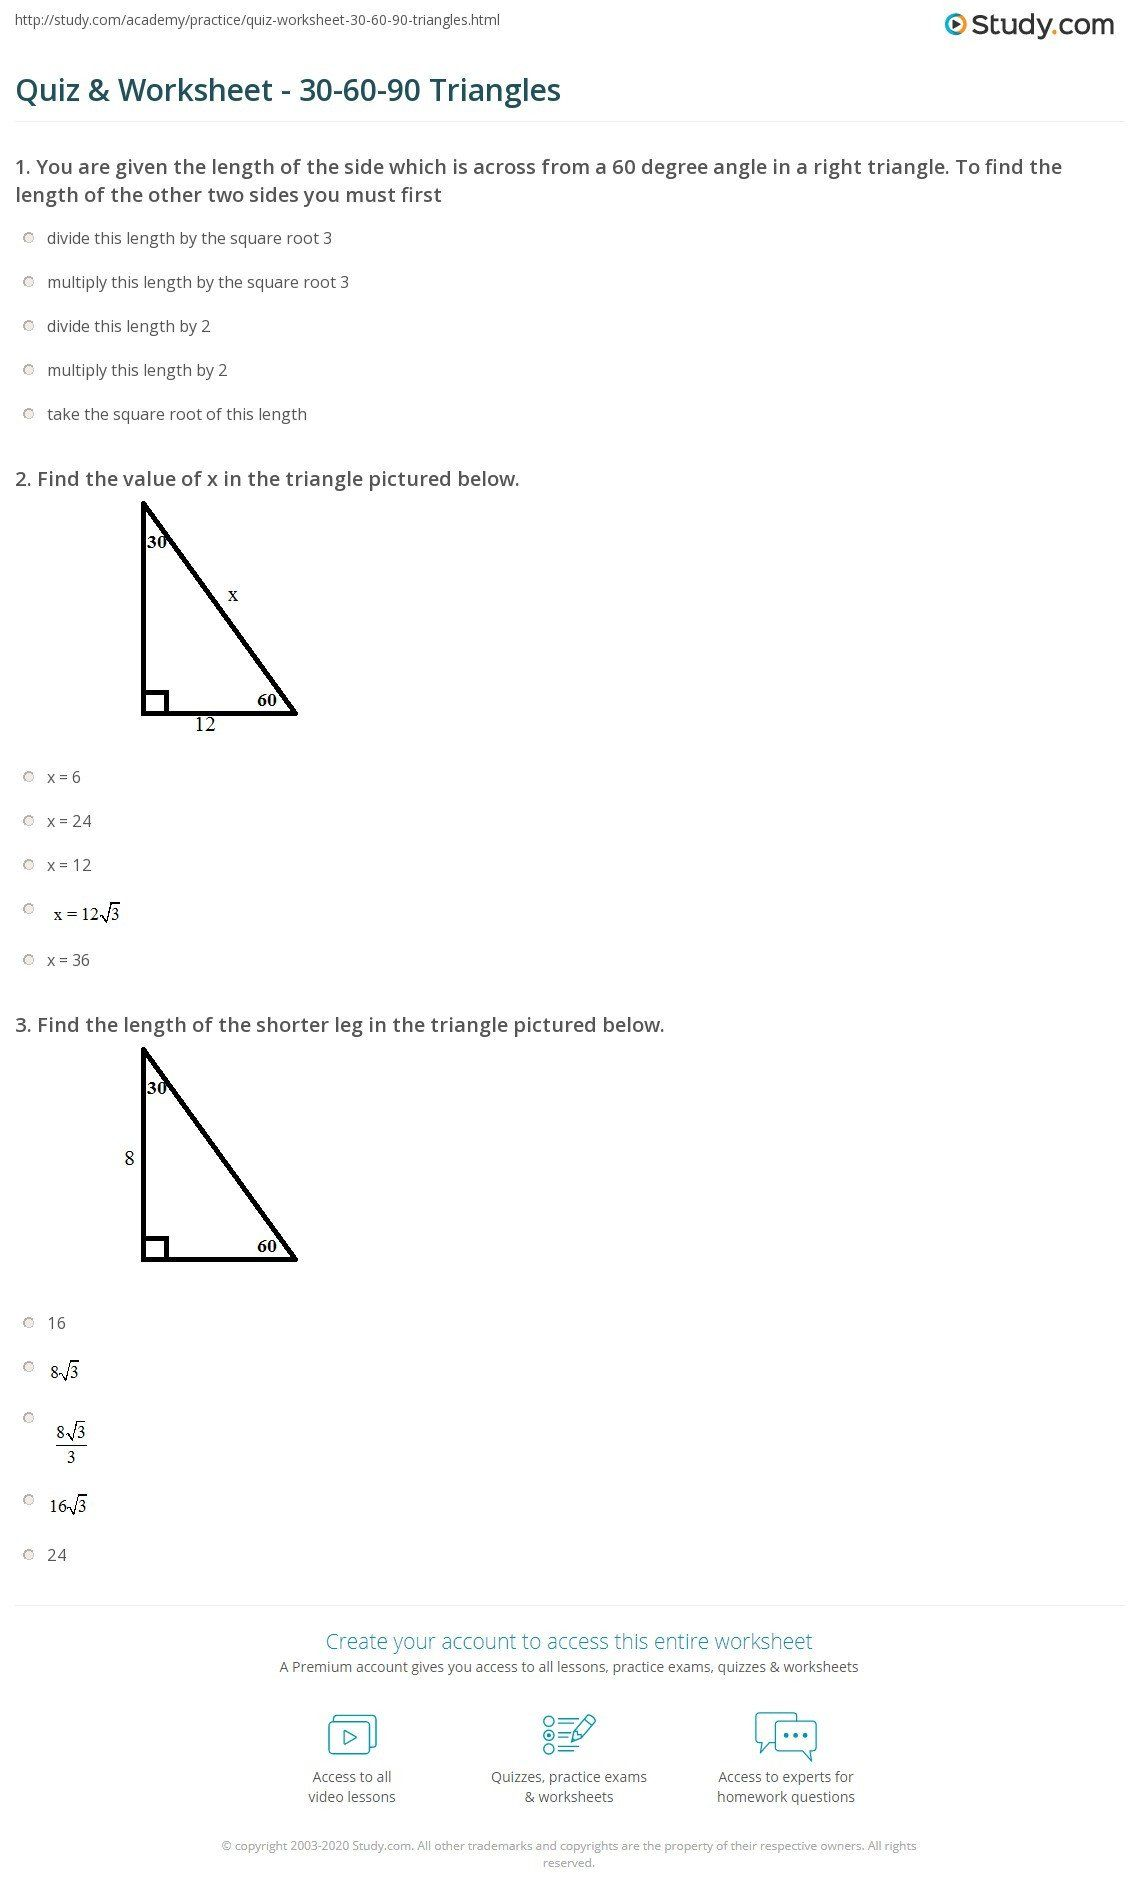 Special Right Triangle Worksheet 5 8 Homework 30 60 90 Triangles Key Triangle Worksheet Practices Worksheets Right Triangle [ 1902 x 1140 Pixel ]